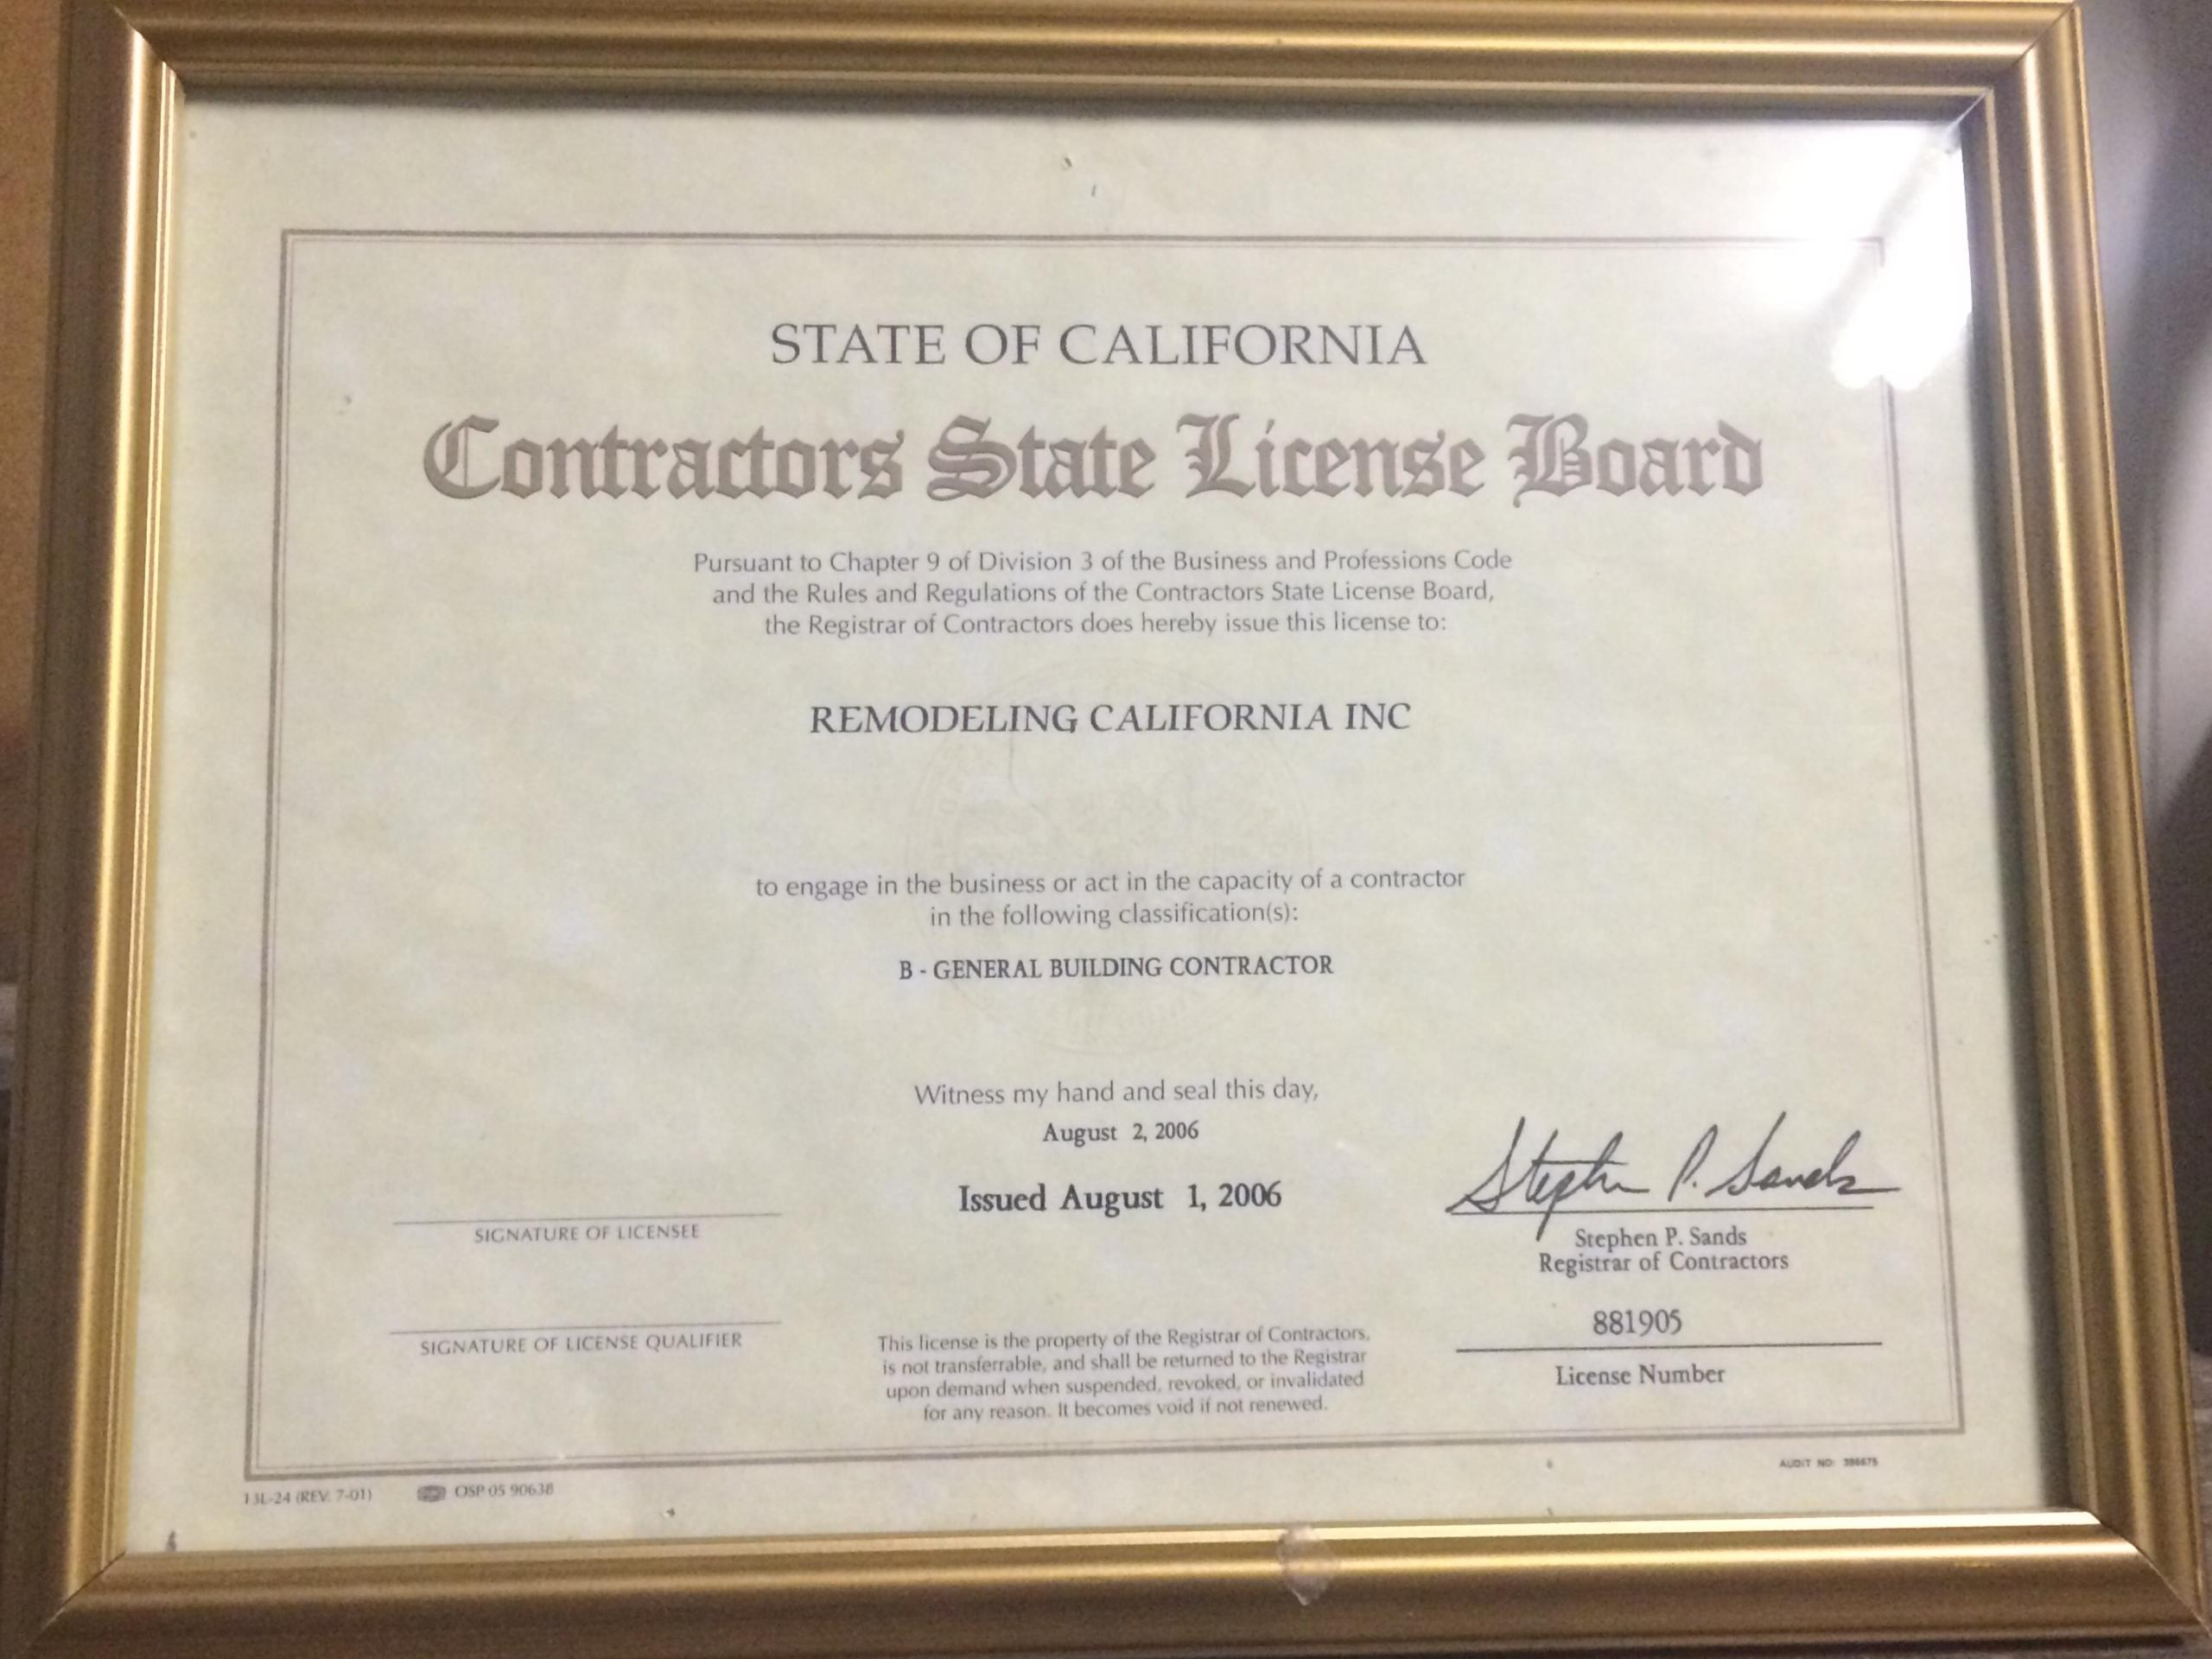 Los Angeles Construction License And Bond Remodeling California